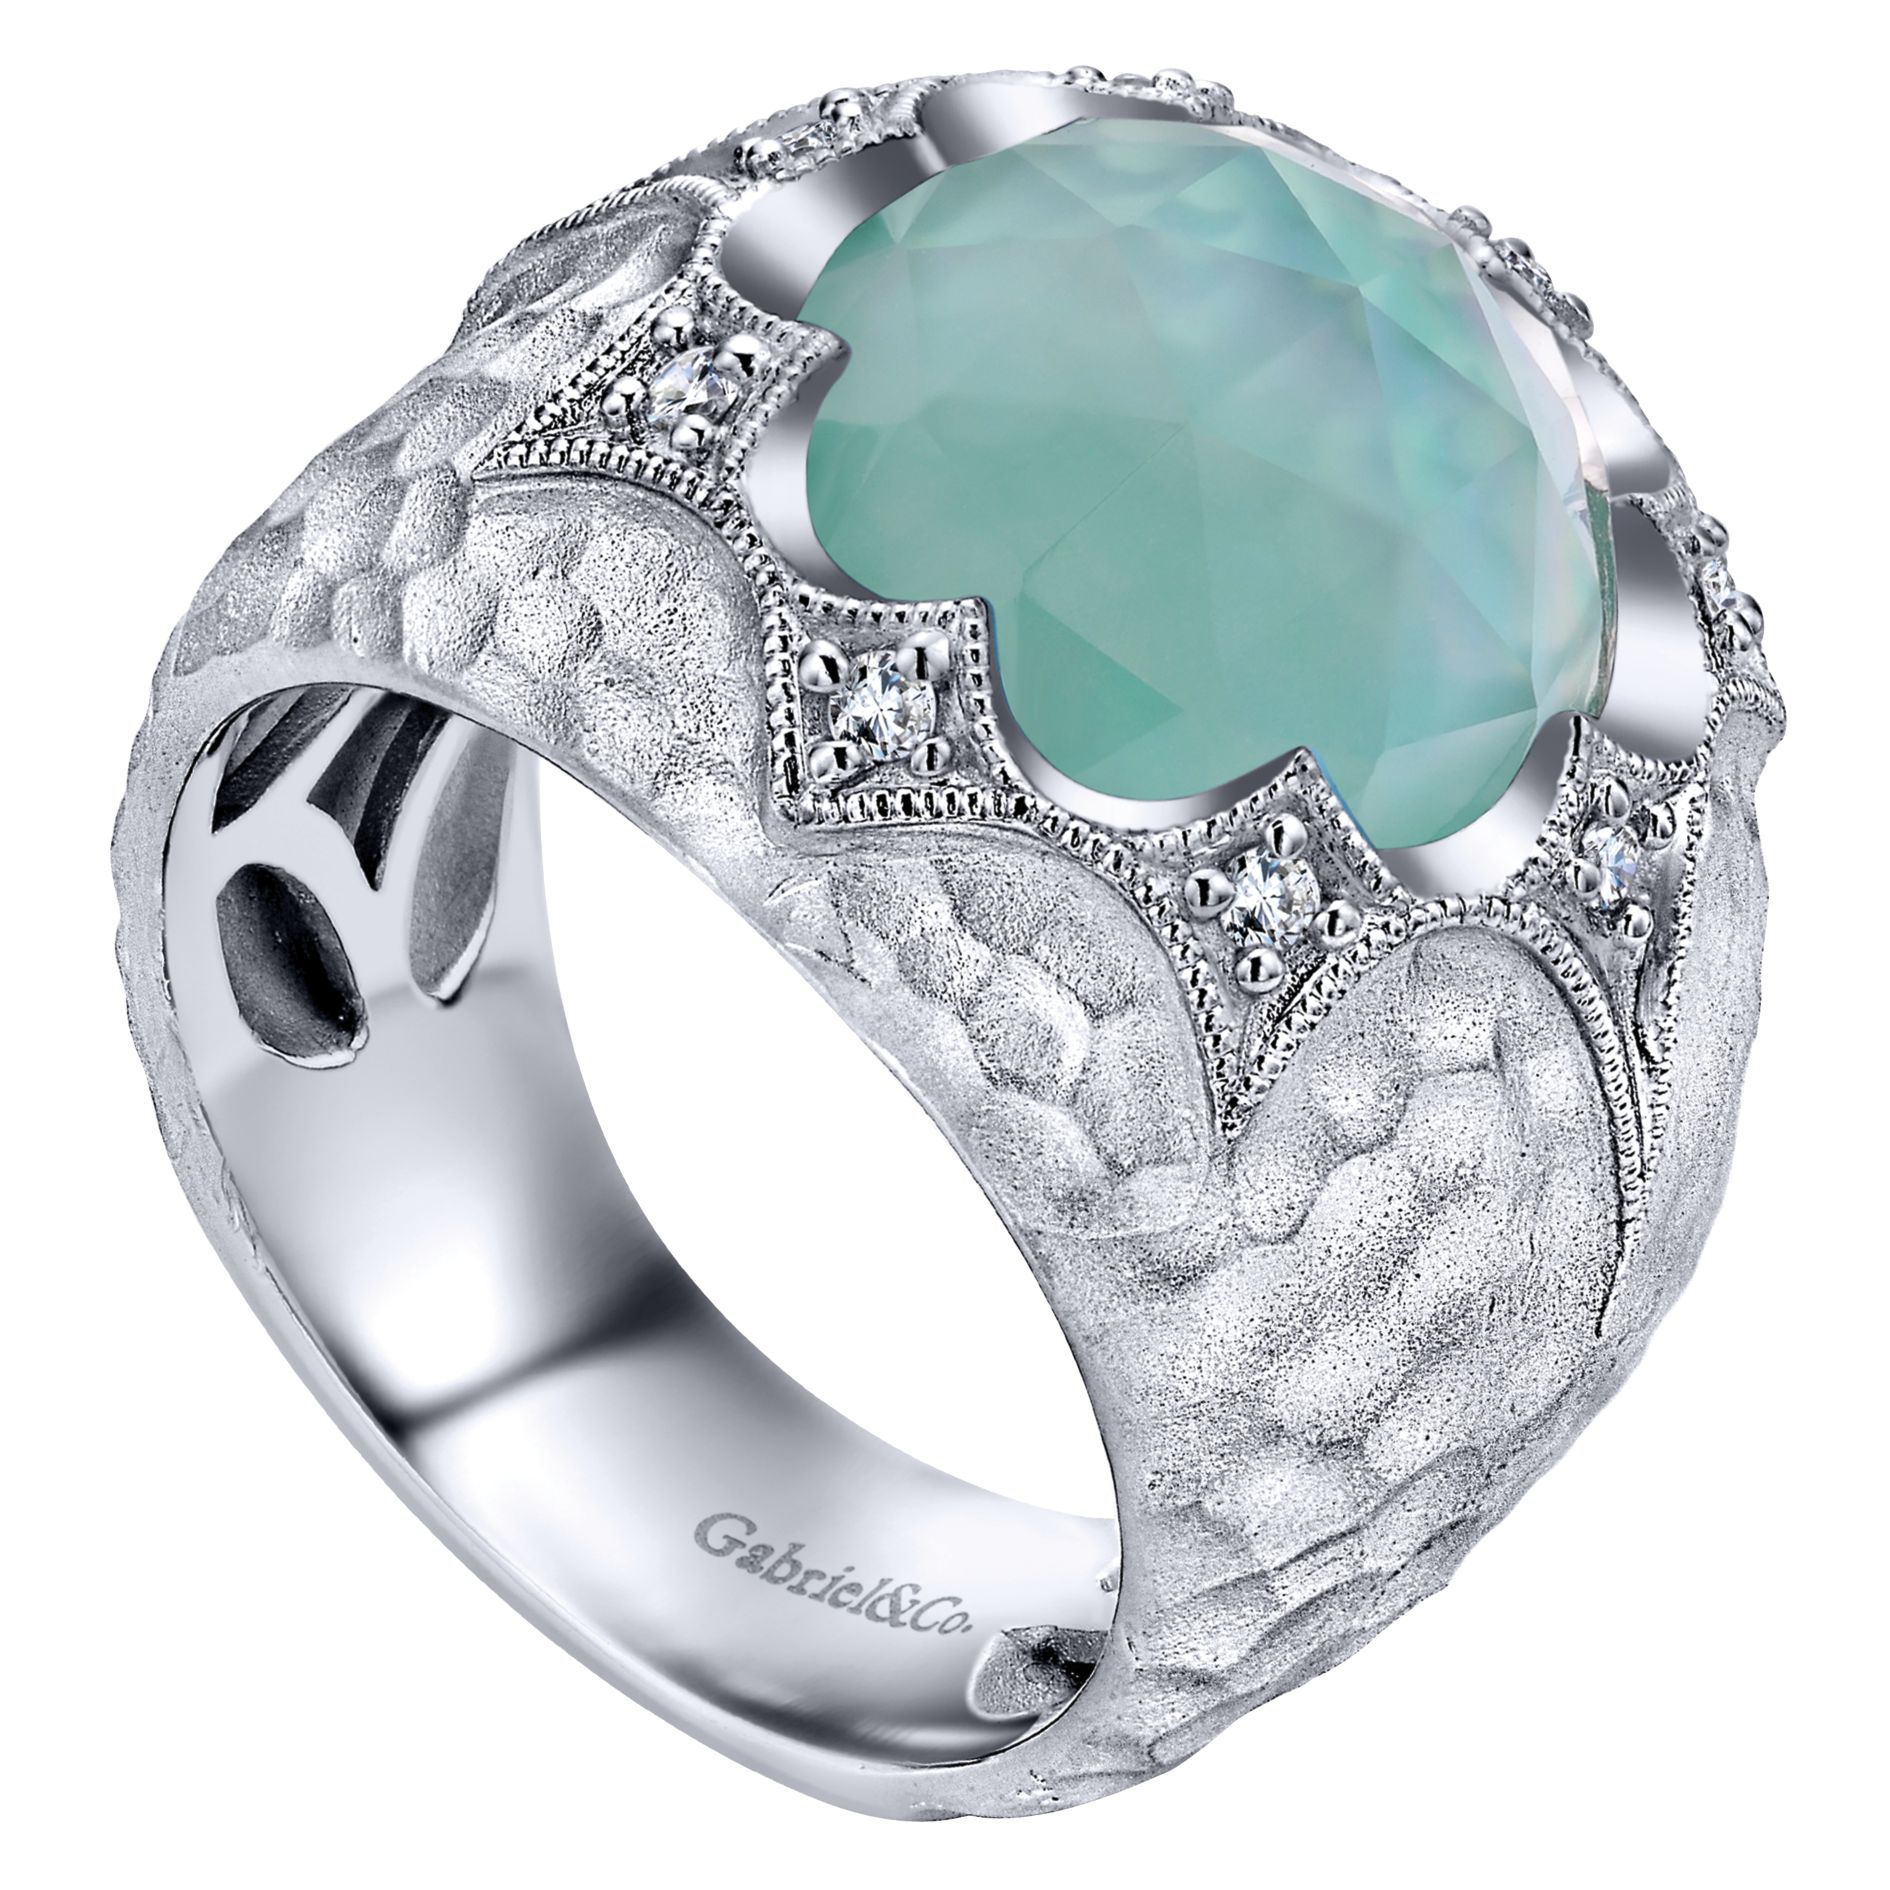 Rings - SILVER FASHION MULTI COLOR STONE LADIES RING - image #3